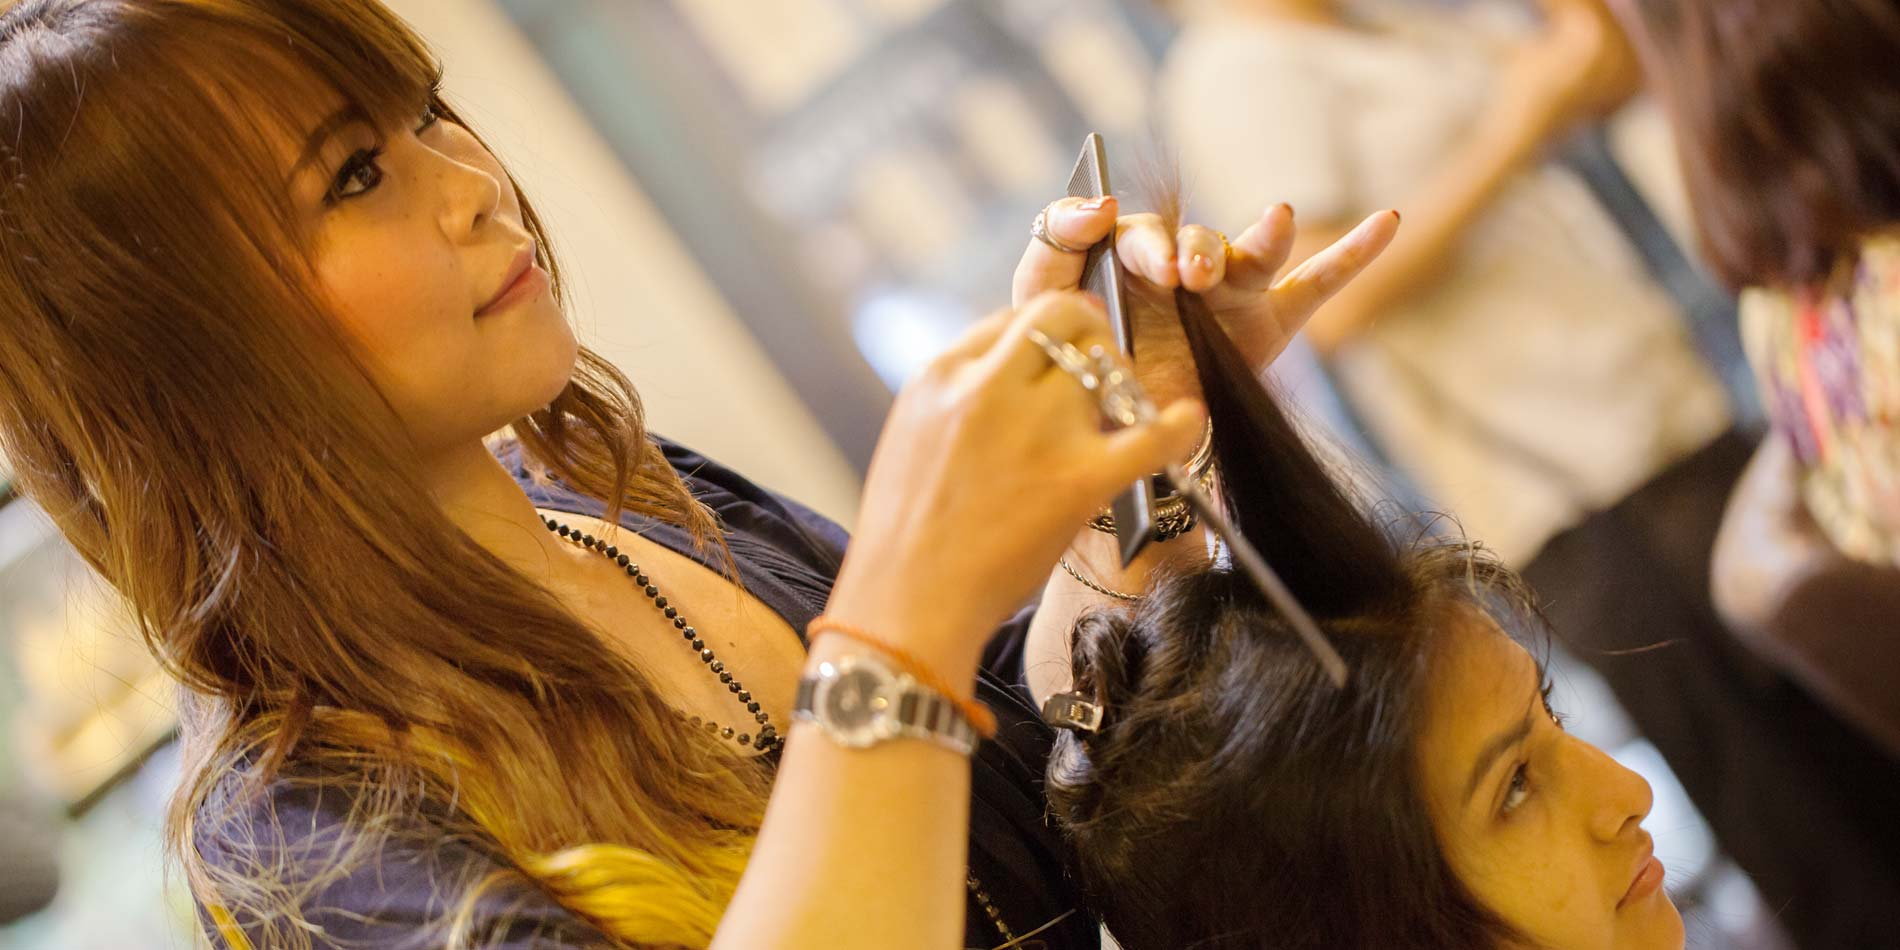 snip salons & spa, best spa goa, best salon, beauty spa, facial men, woman, hair salon, spa treatment, brij design studio